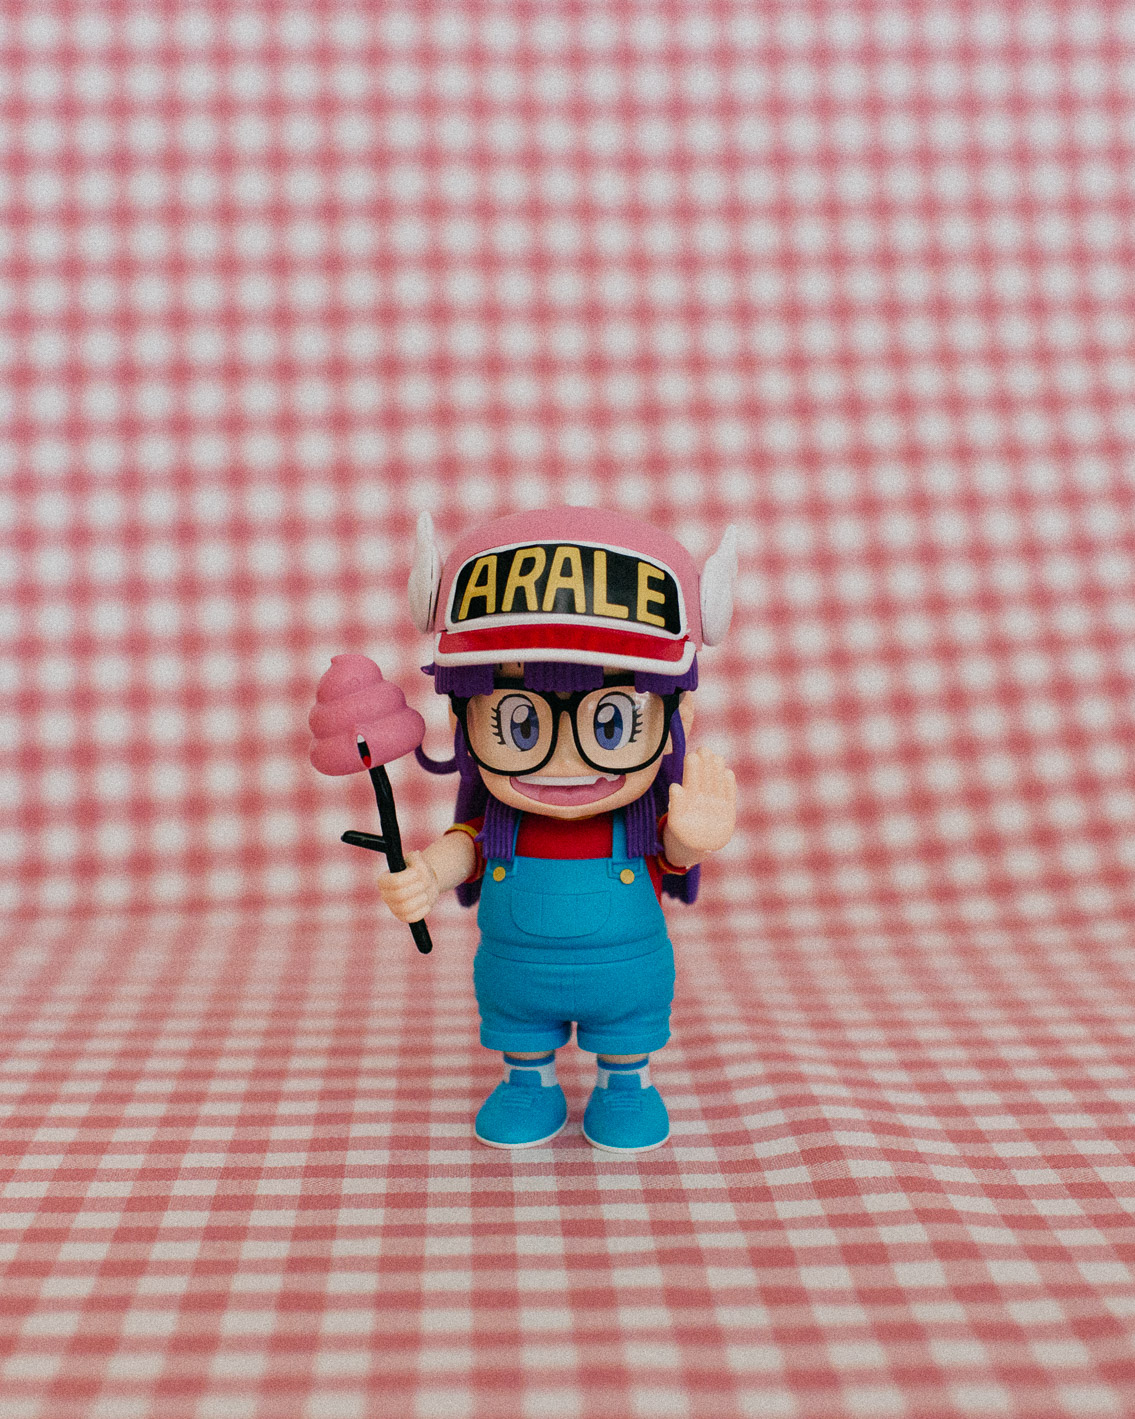 Dr Slump Arale Figure rise Mechanics Bandai - The cat, you and us